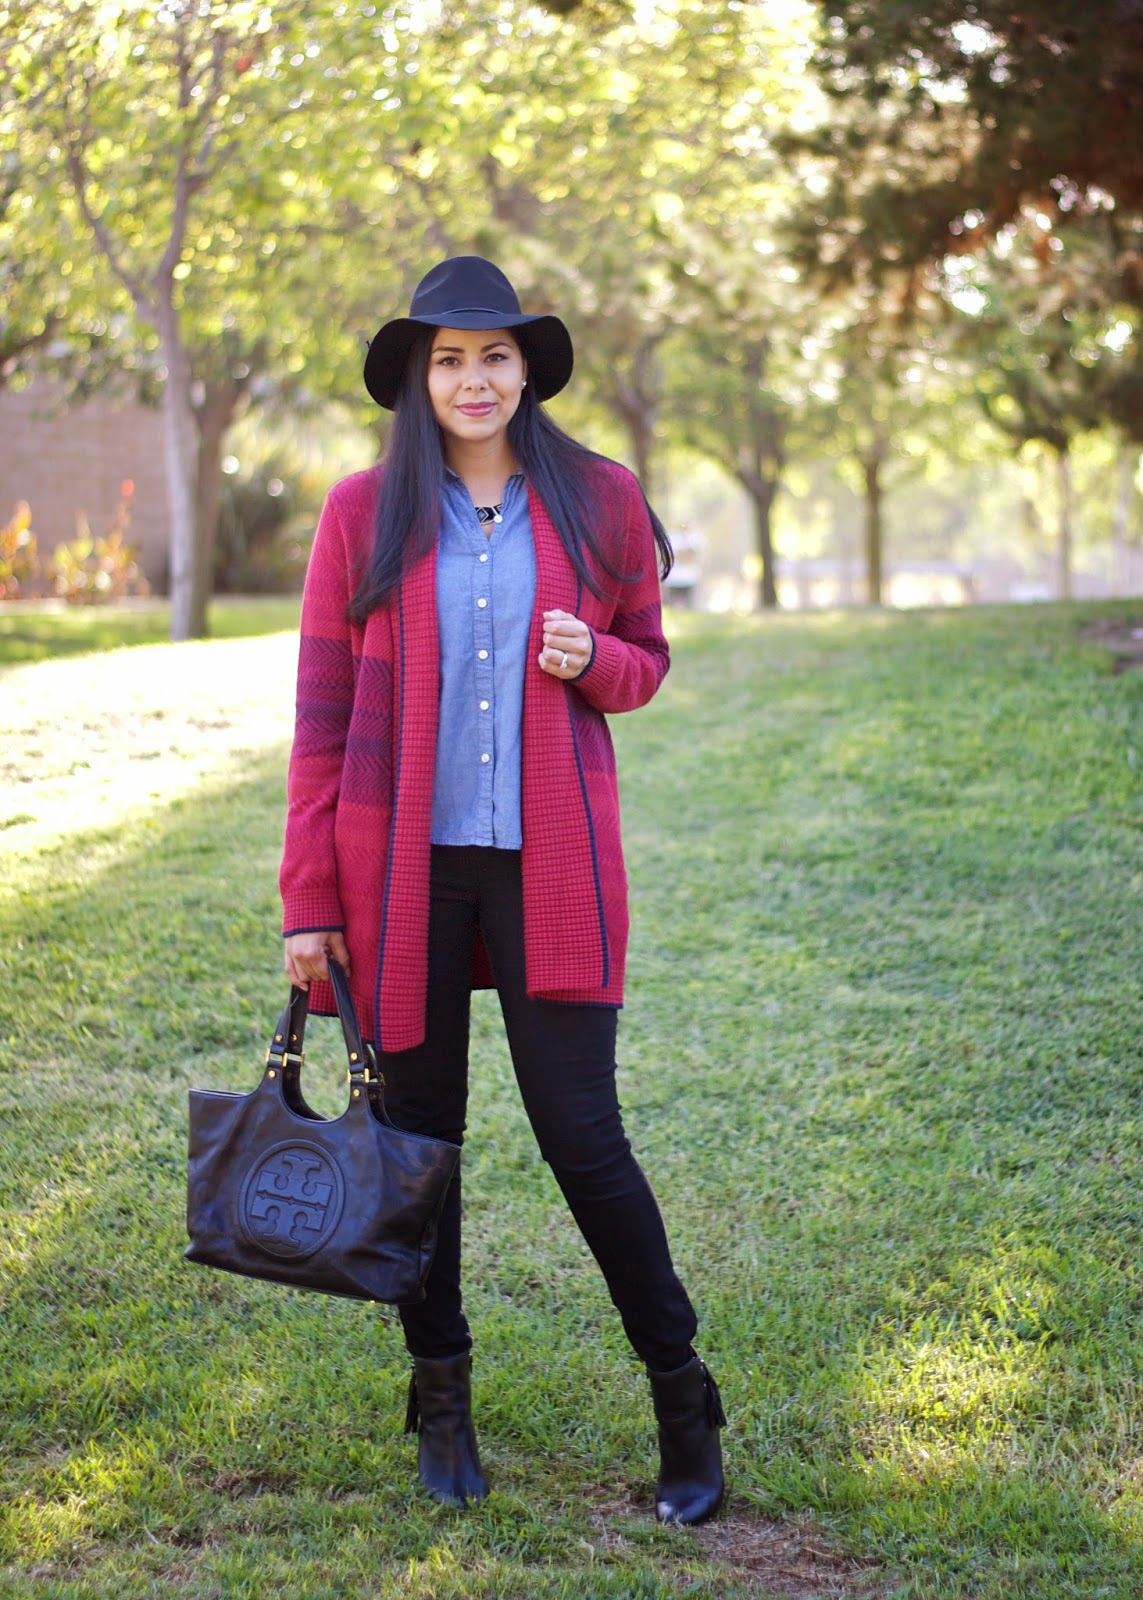 cozy knit, how to wear a chambray, chambray under sweater, how to layer a chambray, how to layer in fall 2014, black and wine outfit, oxblood sweater, maroon sweater, how to wear fall colors 2014